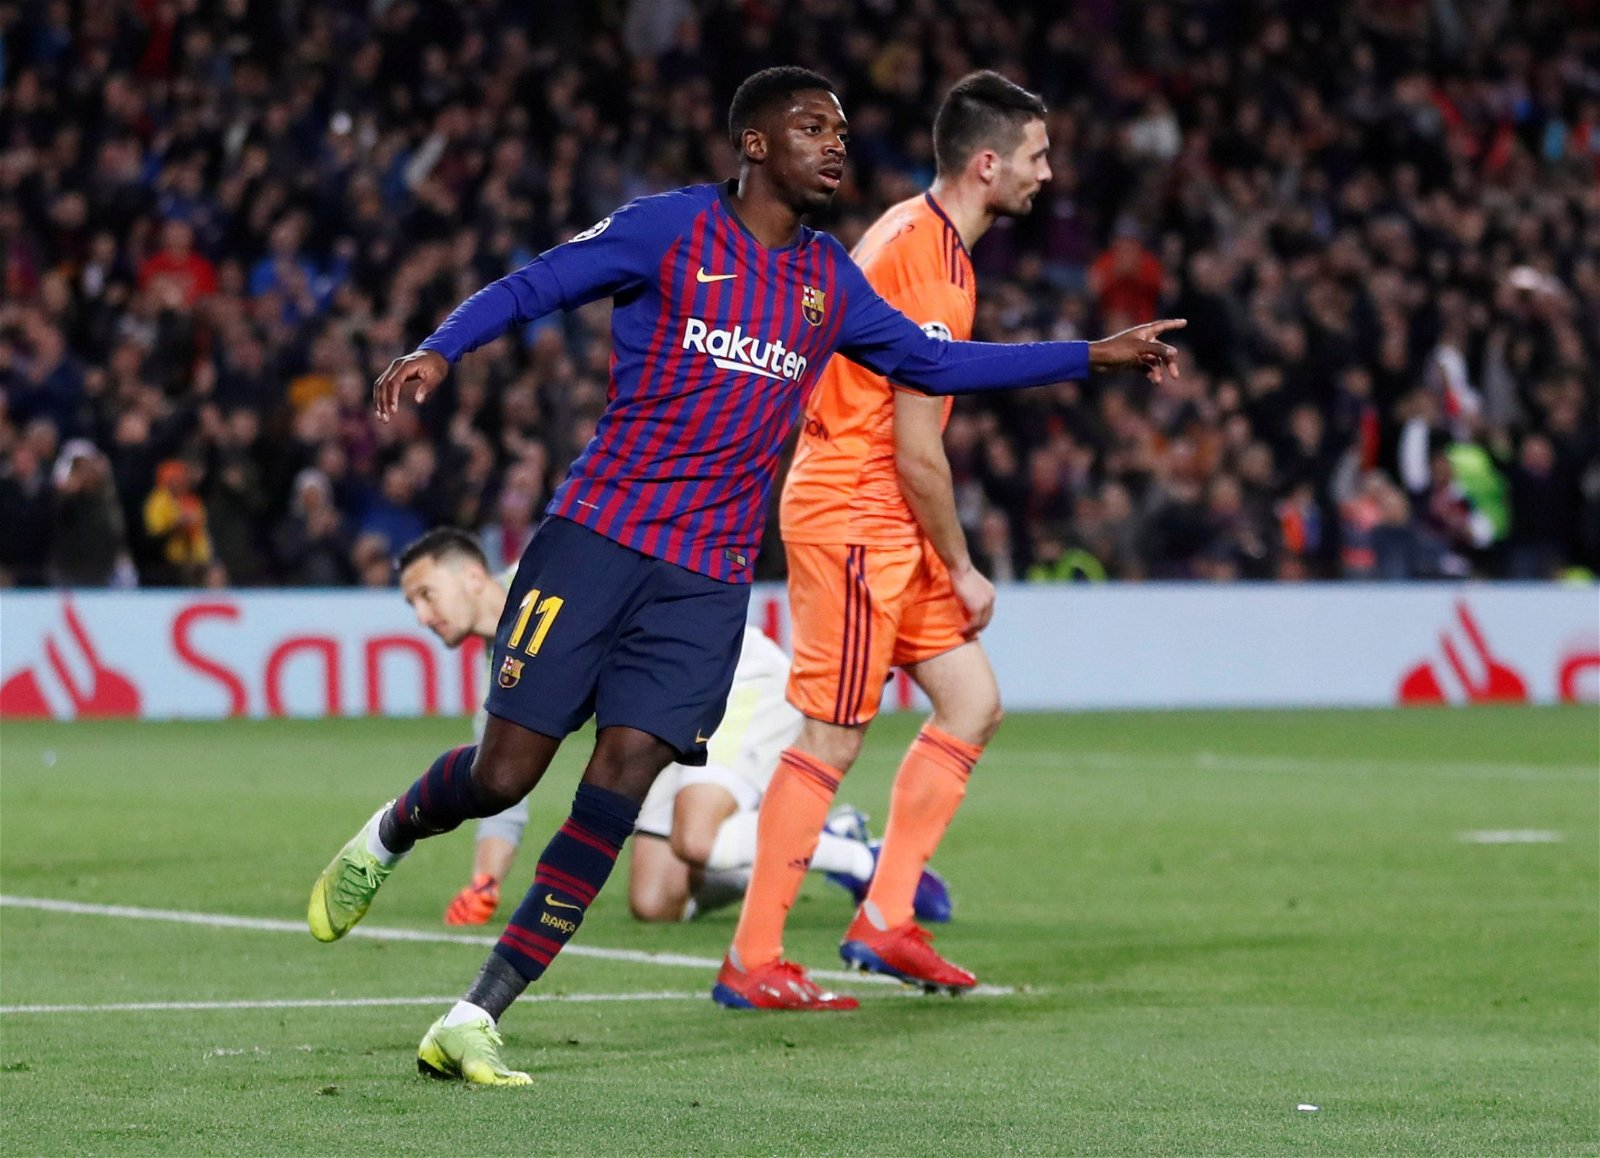 Dembele Barcelona - Barcelona talent showing signs that he has turned a major corner in his development - opinion